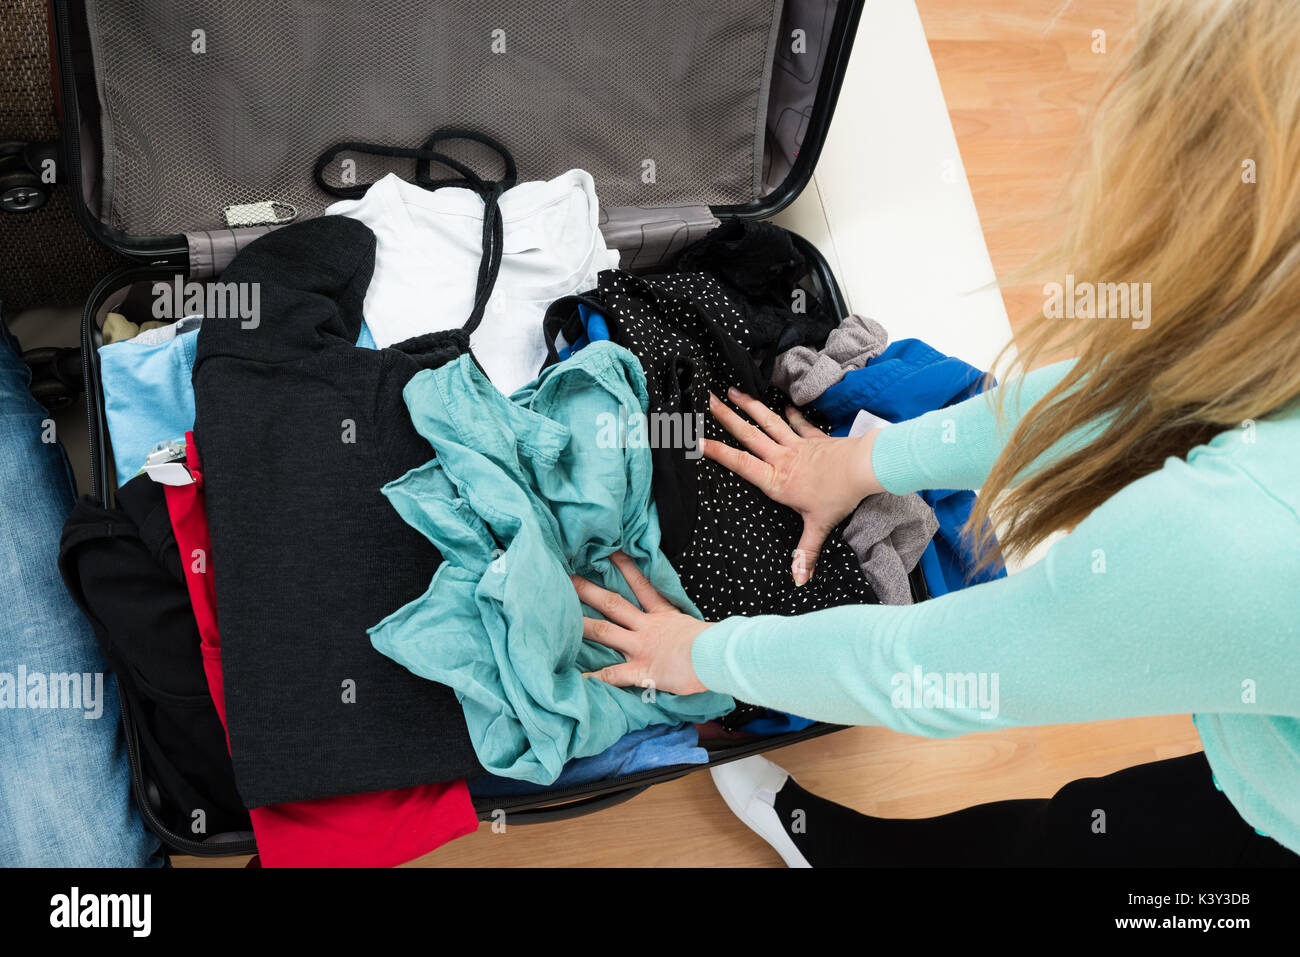 High Angle View of Woman Packing clothes in Suitcase Photo Stock